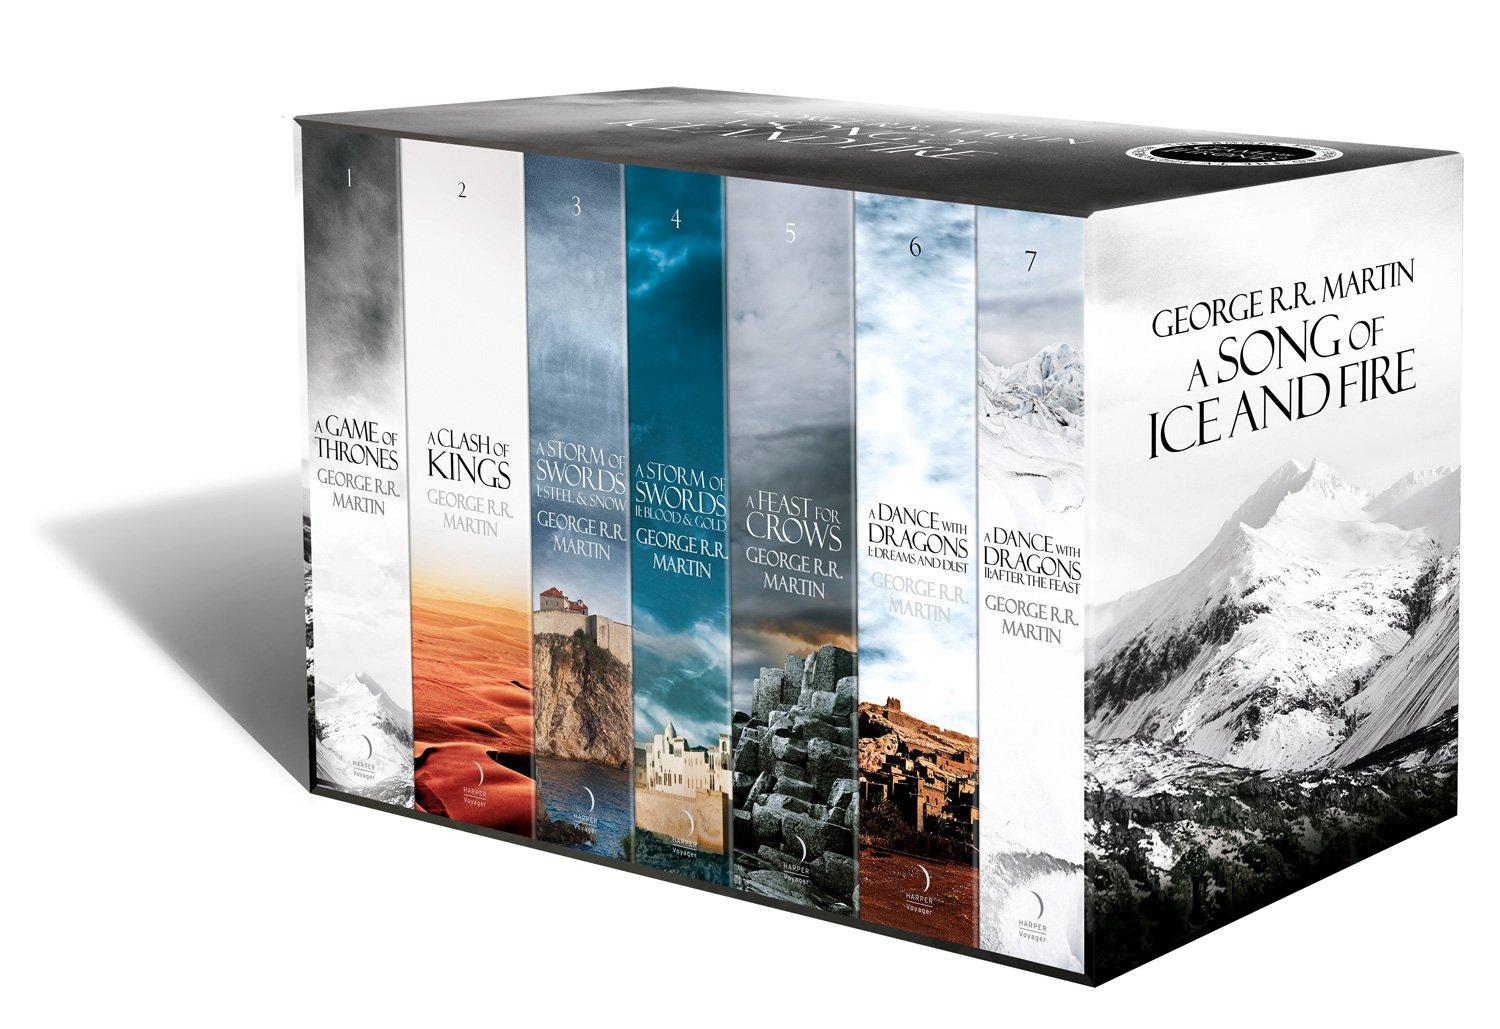 Image result for Game of thrones book box set